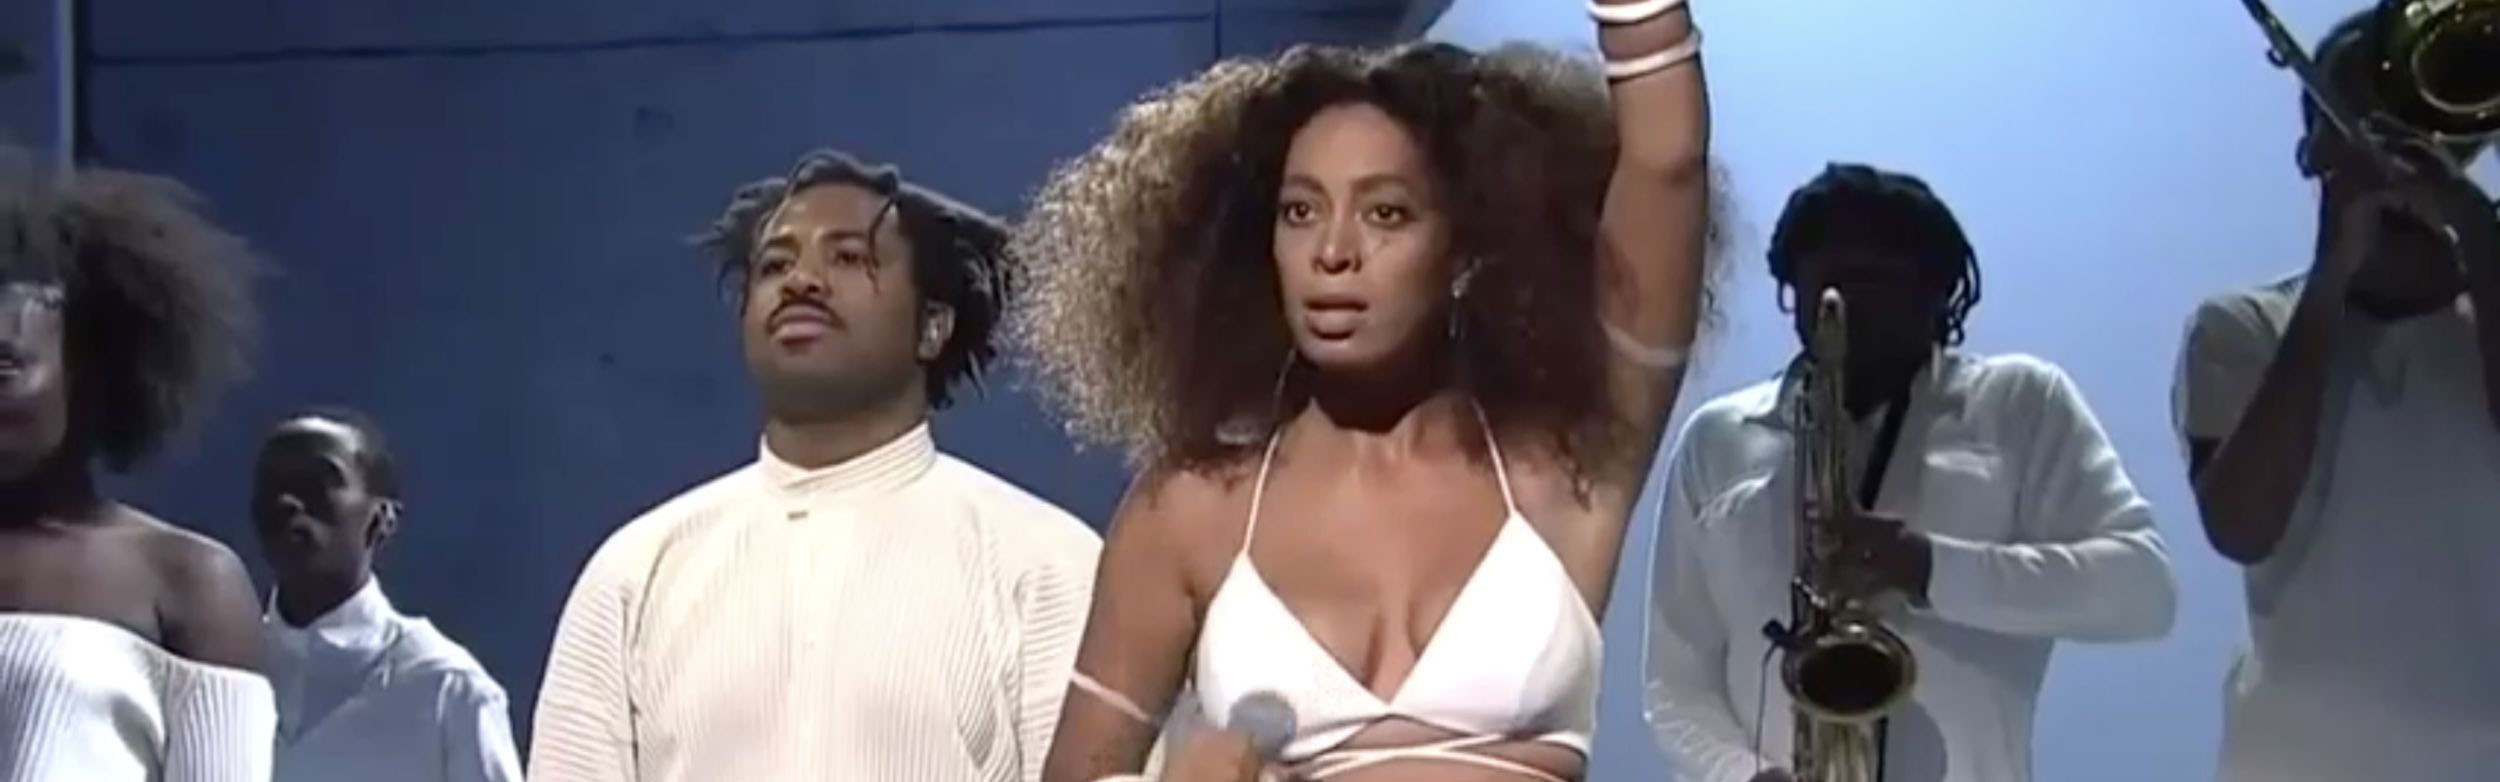 solange-snl-saturday-night-live-sampha-dont-touch-my-hair